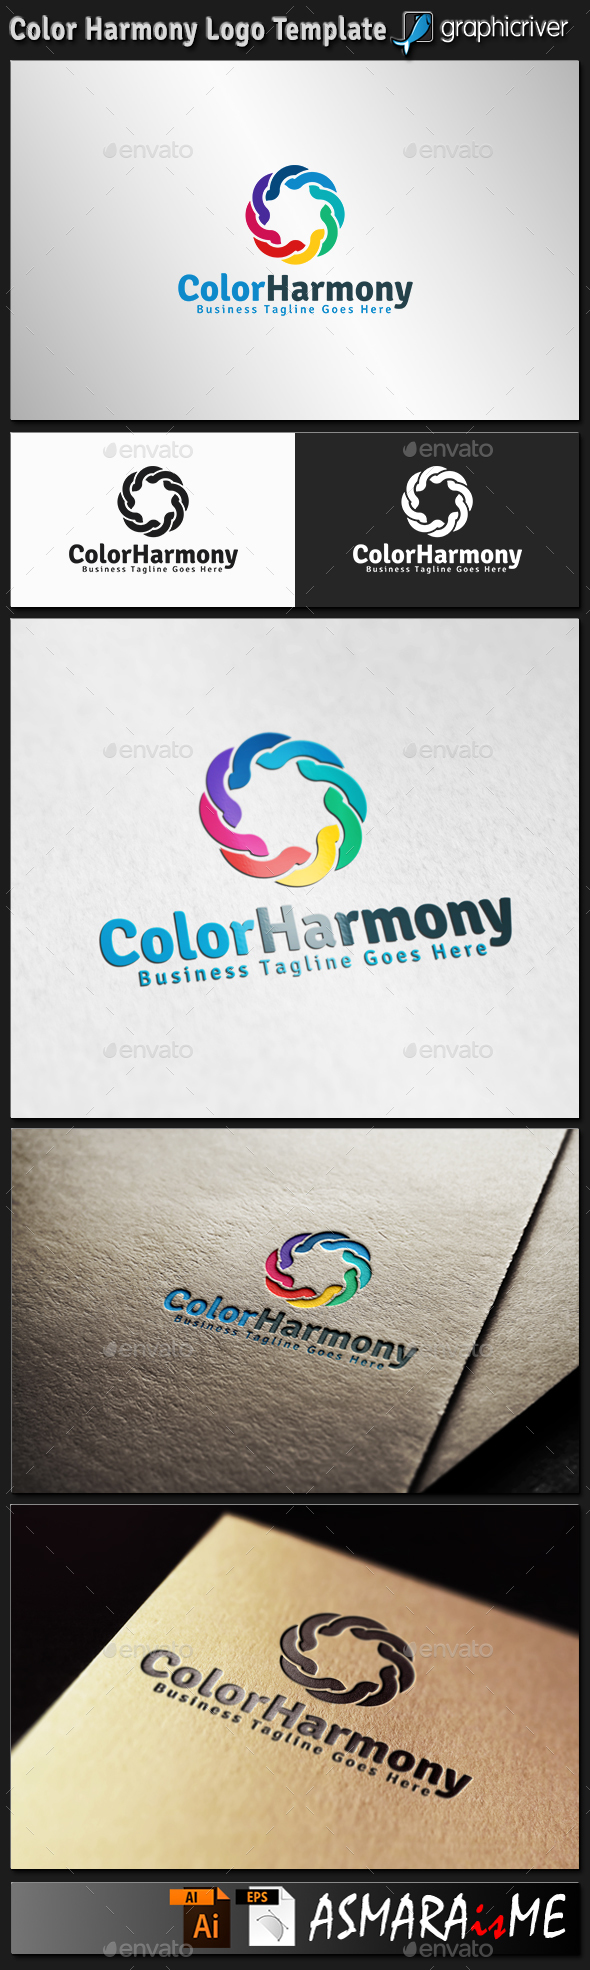 Color Harmony Logo - Abstract Logo Templates